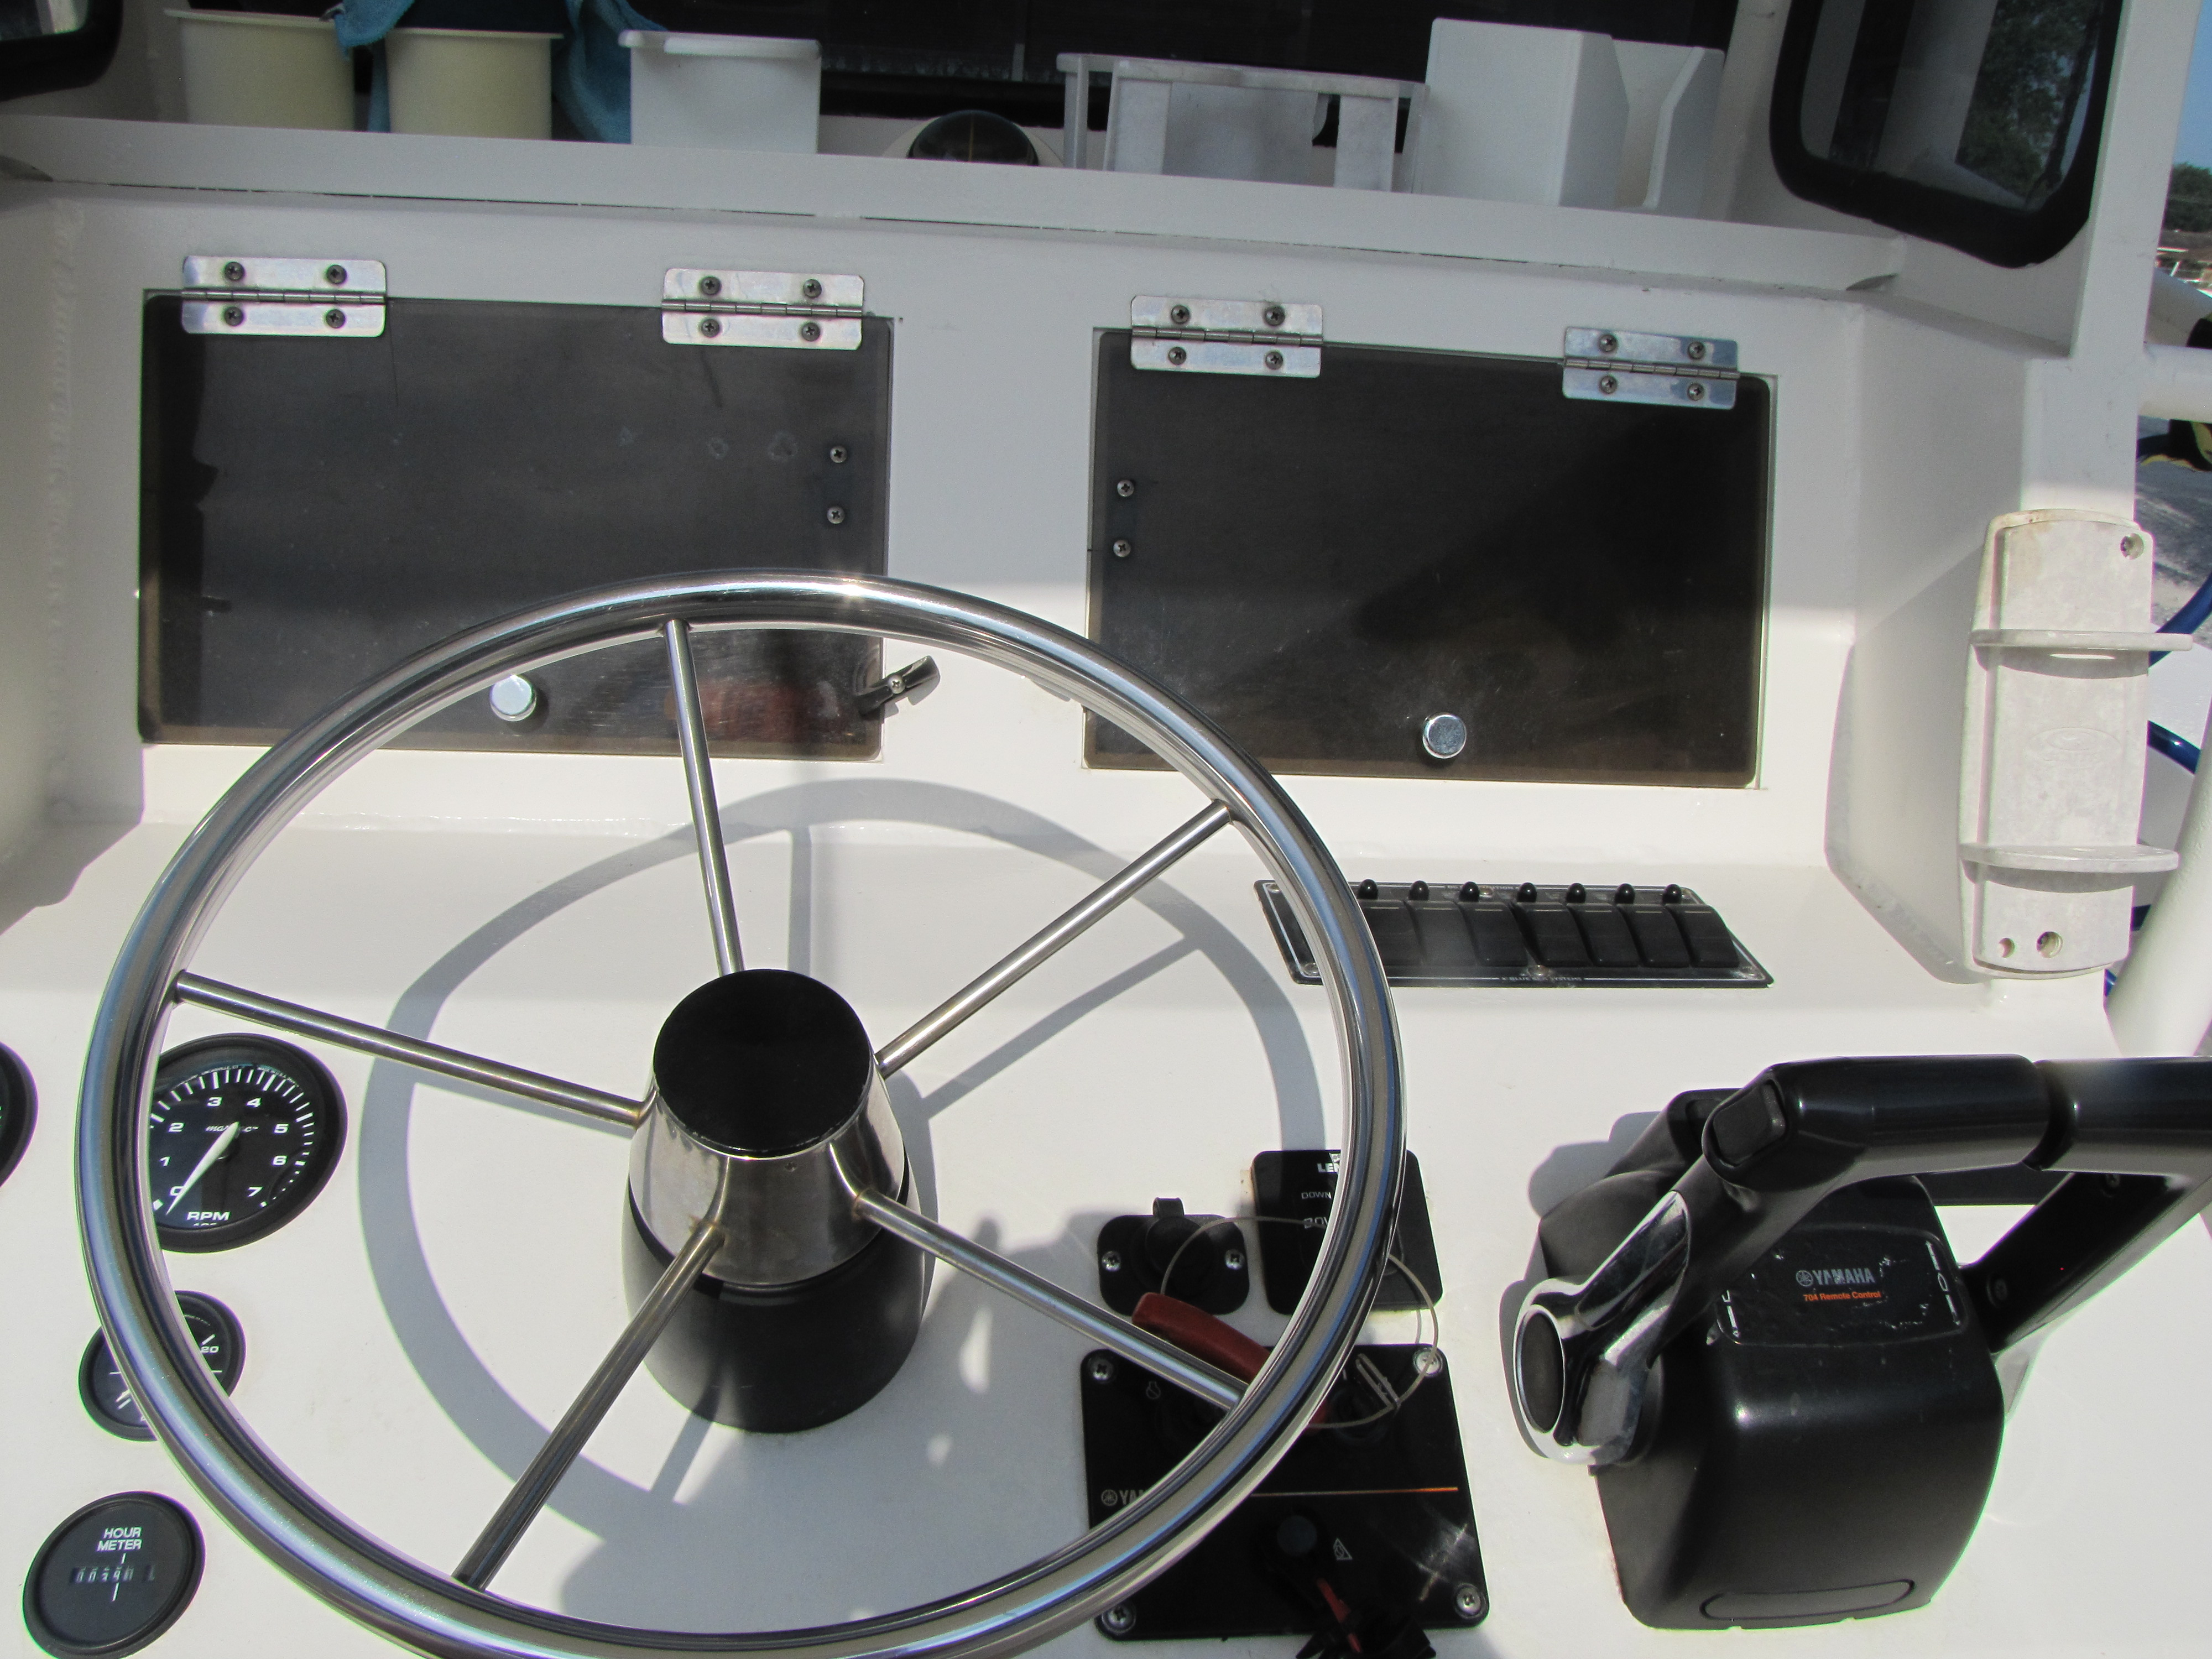 1996 Gravois boat for sale, model of the boat is 23 & Image # 3 of 15